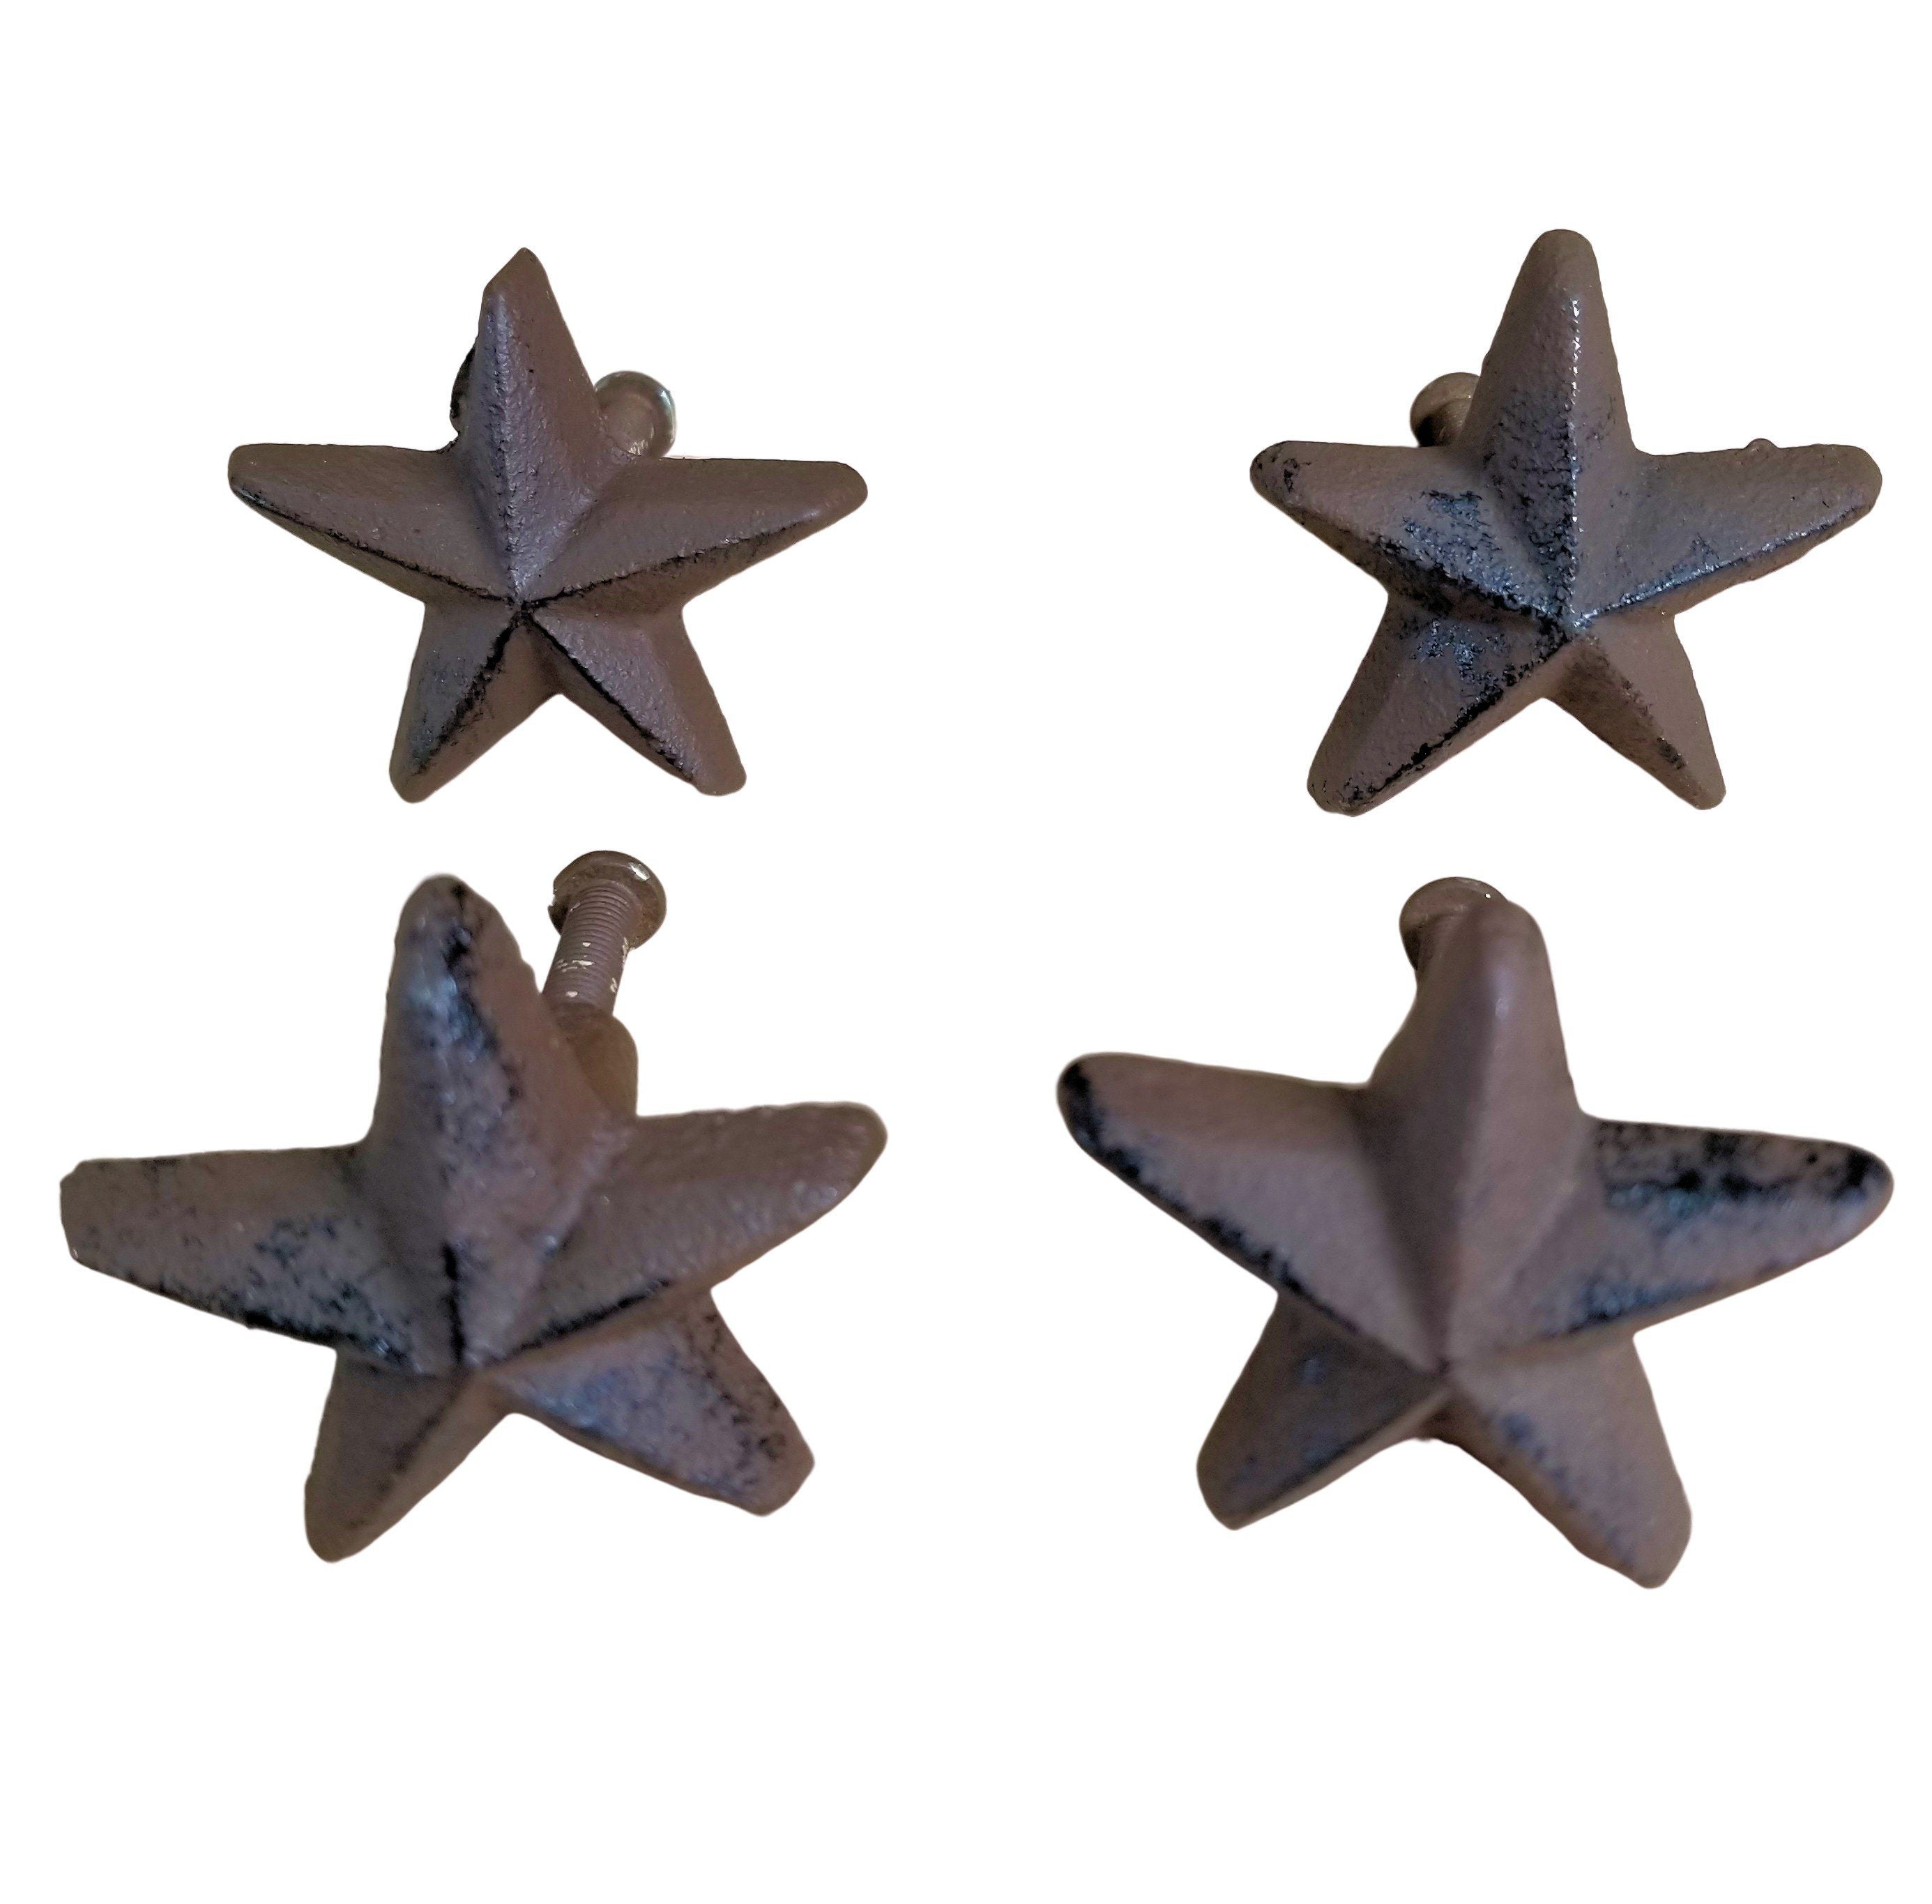 4 pc Cast Iron Star Knobs w/ screws cabinet pulls drawer handles rustic brown knobs Carvers Olde Iron